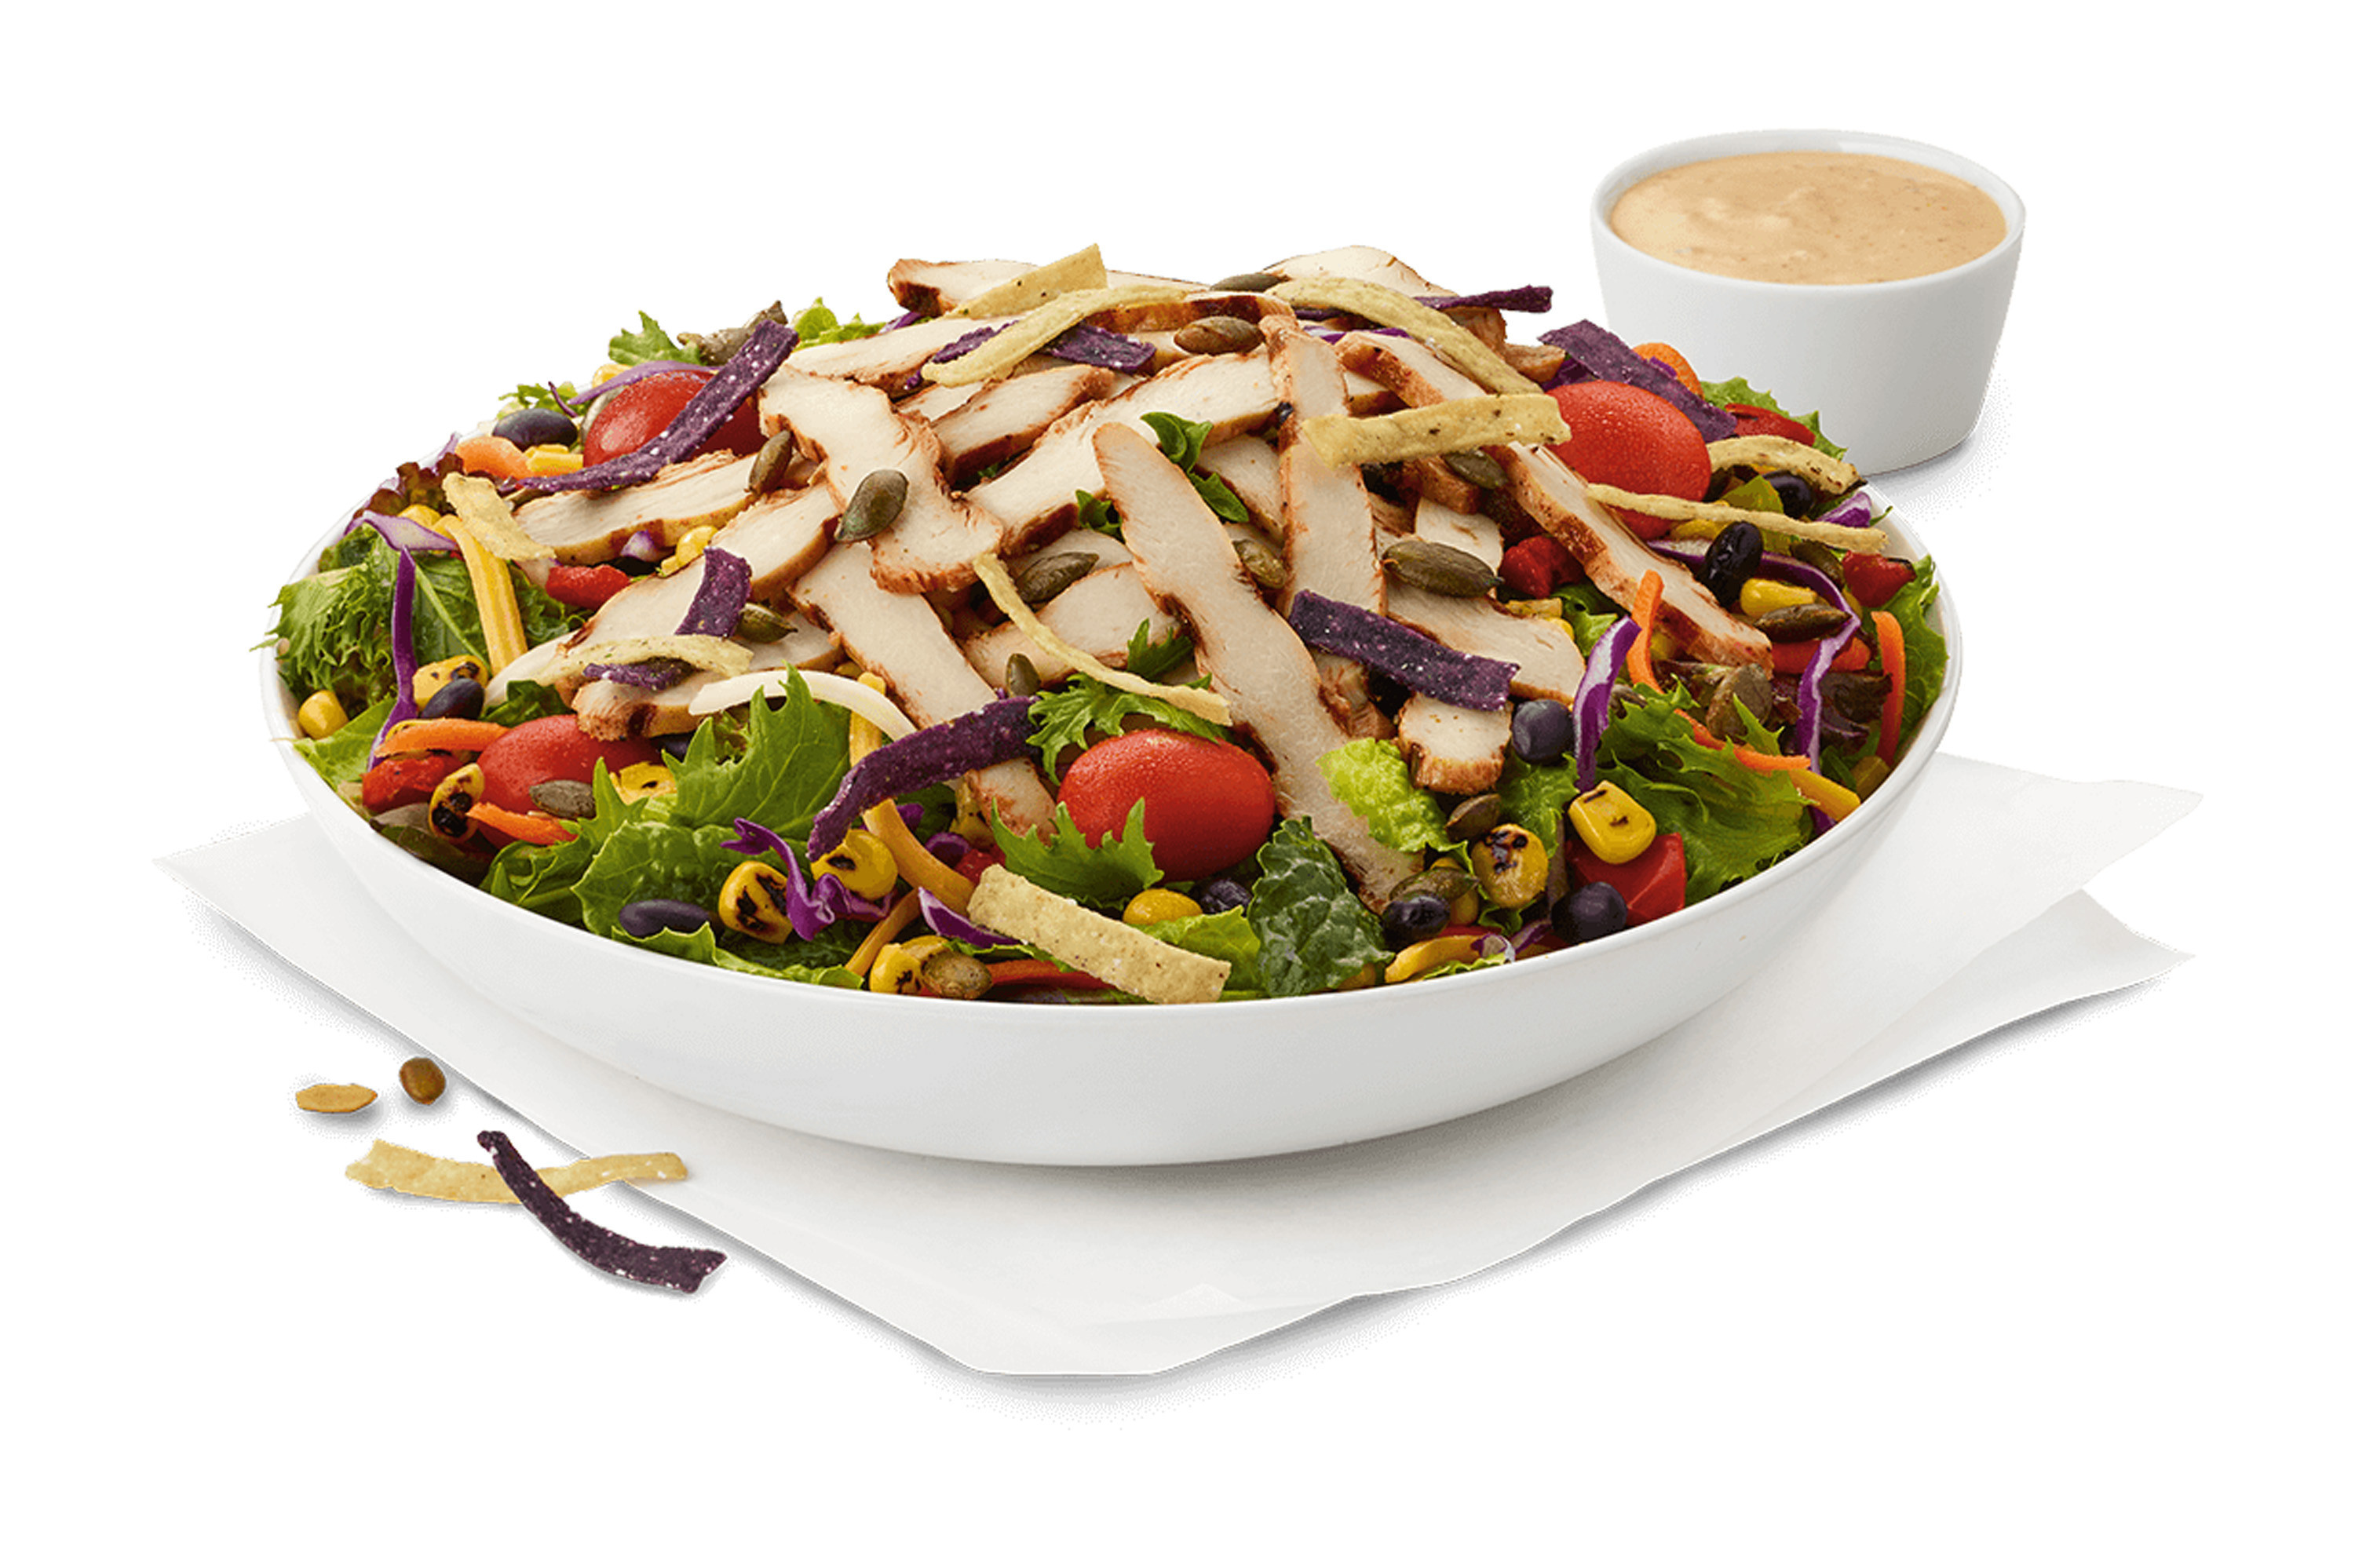 Are Chick Fil A Salads Healthy  14 fast food menu items that aren't going to kill you